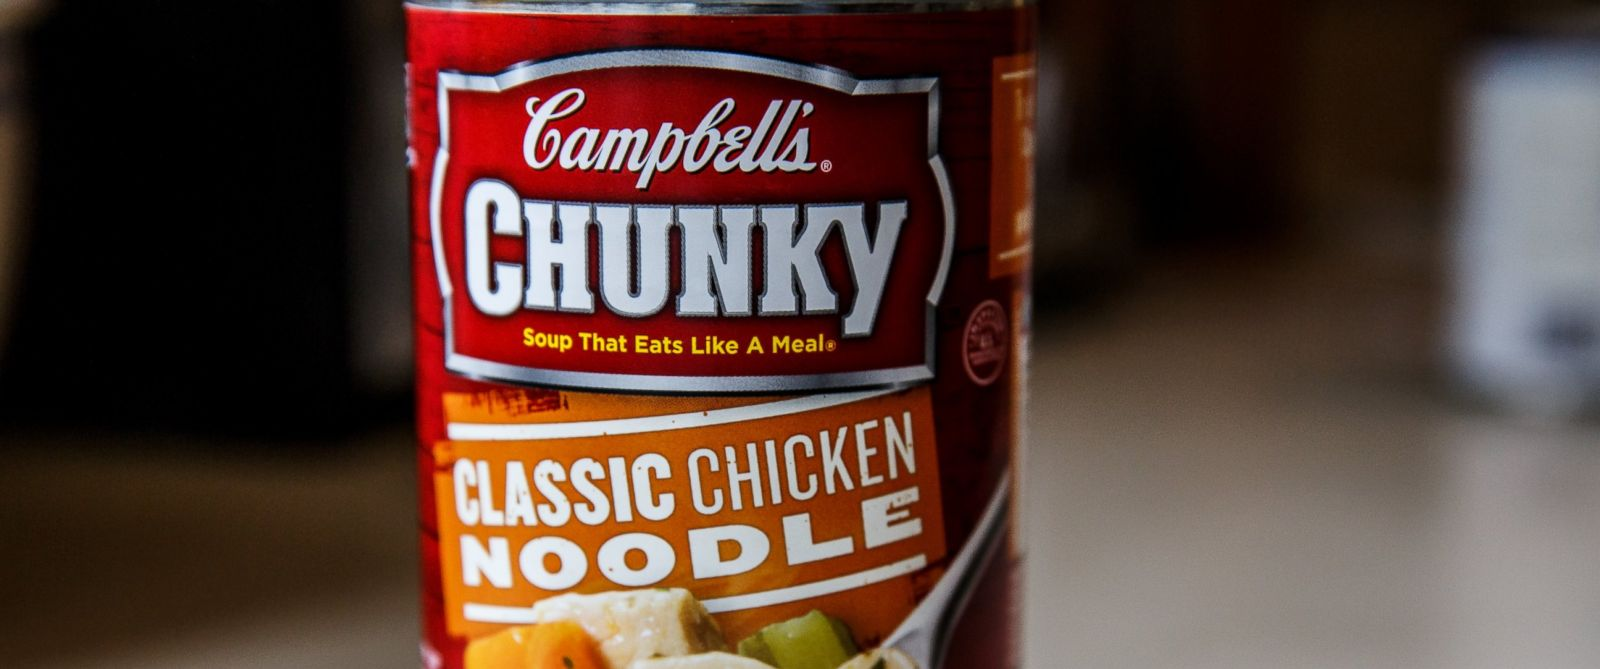 PHOTO: Campbells Chunky Classic Chicken Noodle Soup prepared and ready to heat and serve for lunch or dinner meals is pictured in this undated photo.